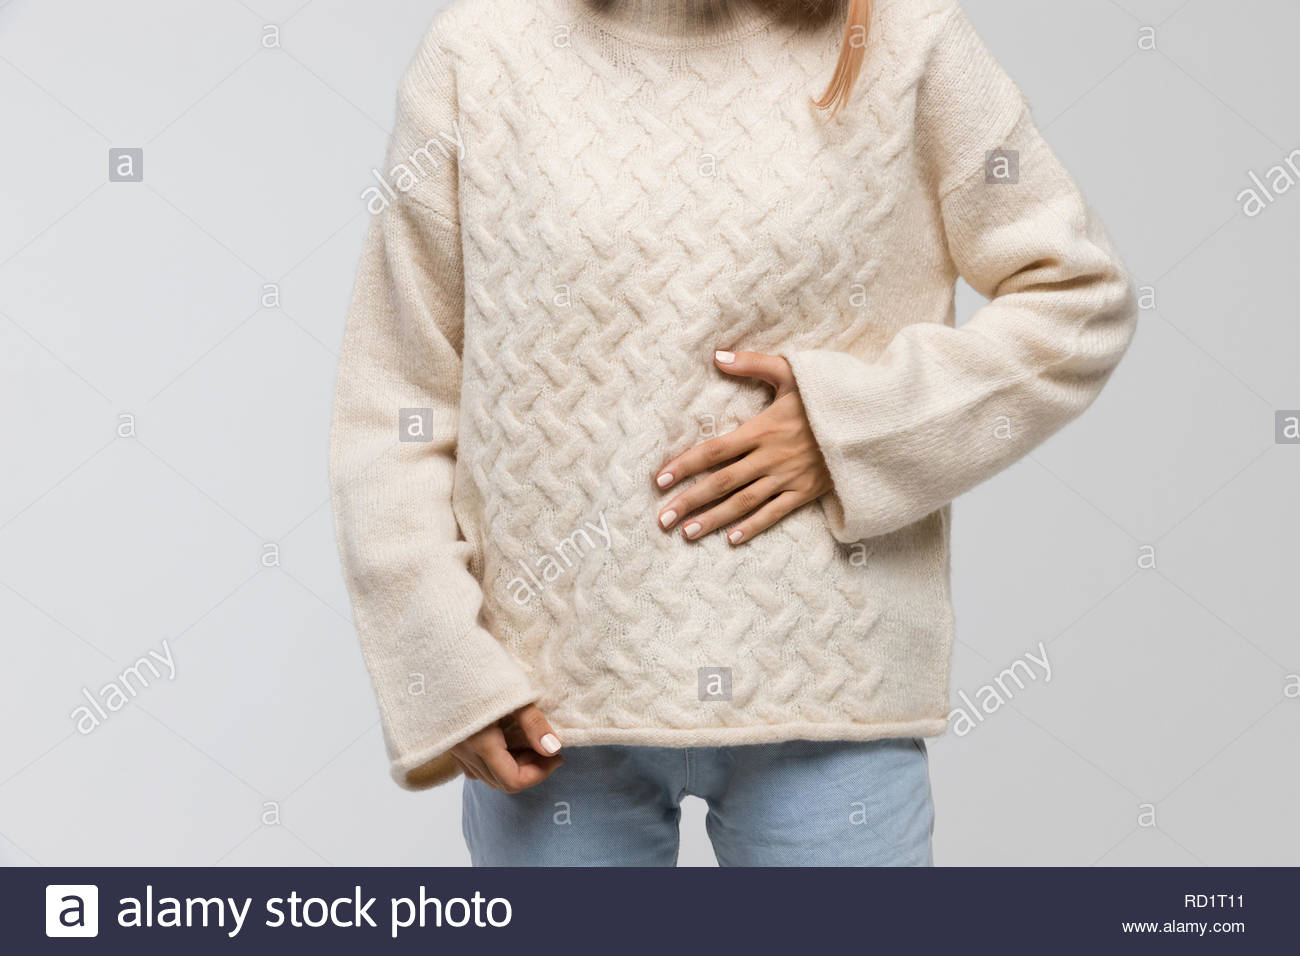 Close-up shot of young woman in white sweater suffering from stomach ache, having menstruation pain, feels bad, front view. Pain in stomach, menstrual. - Stock Image